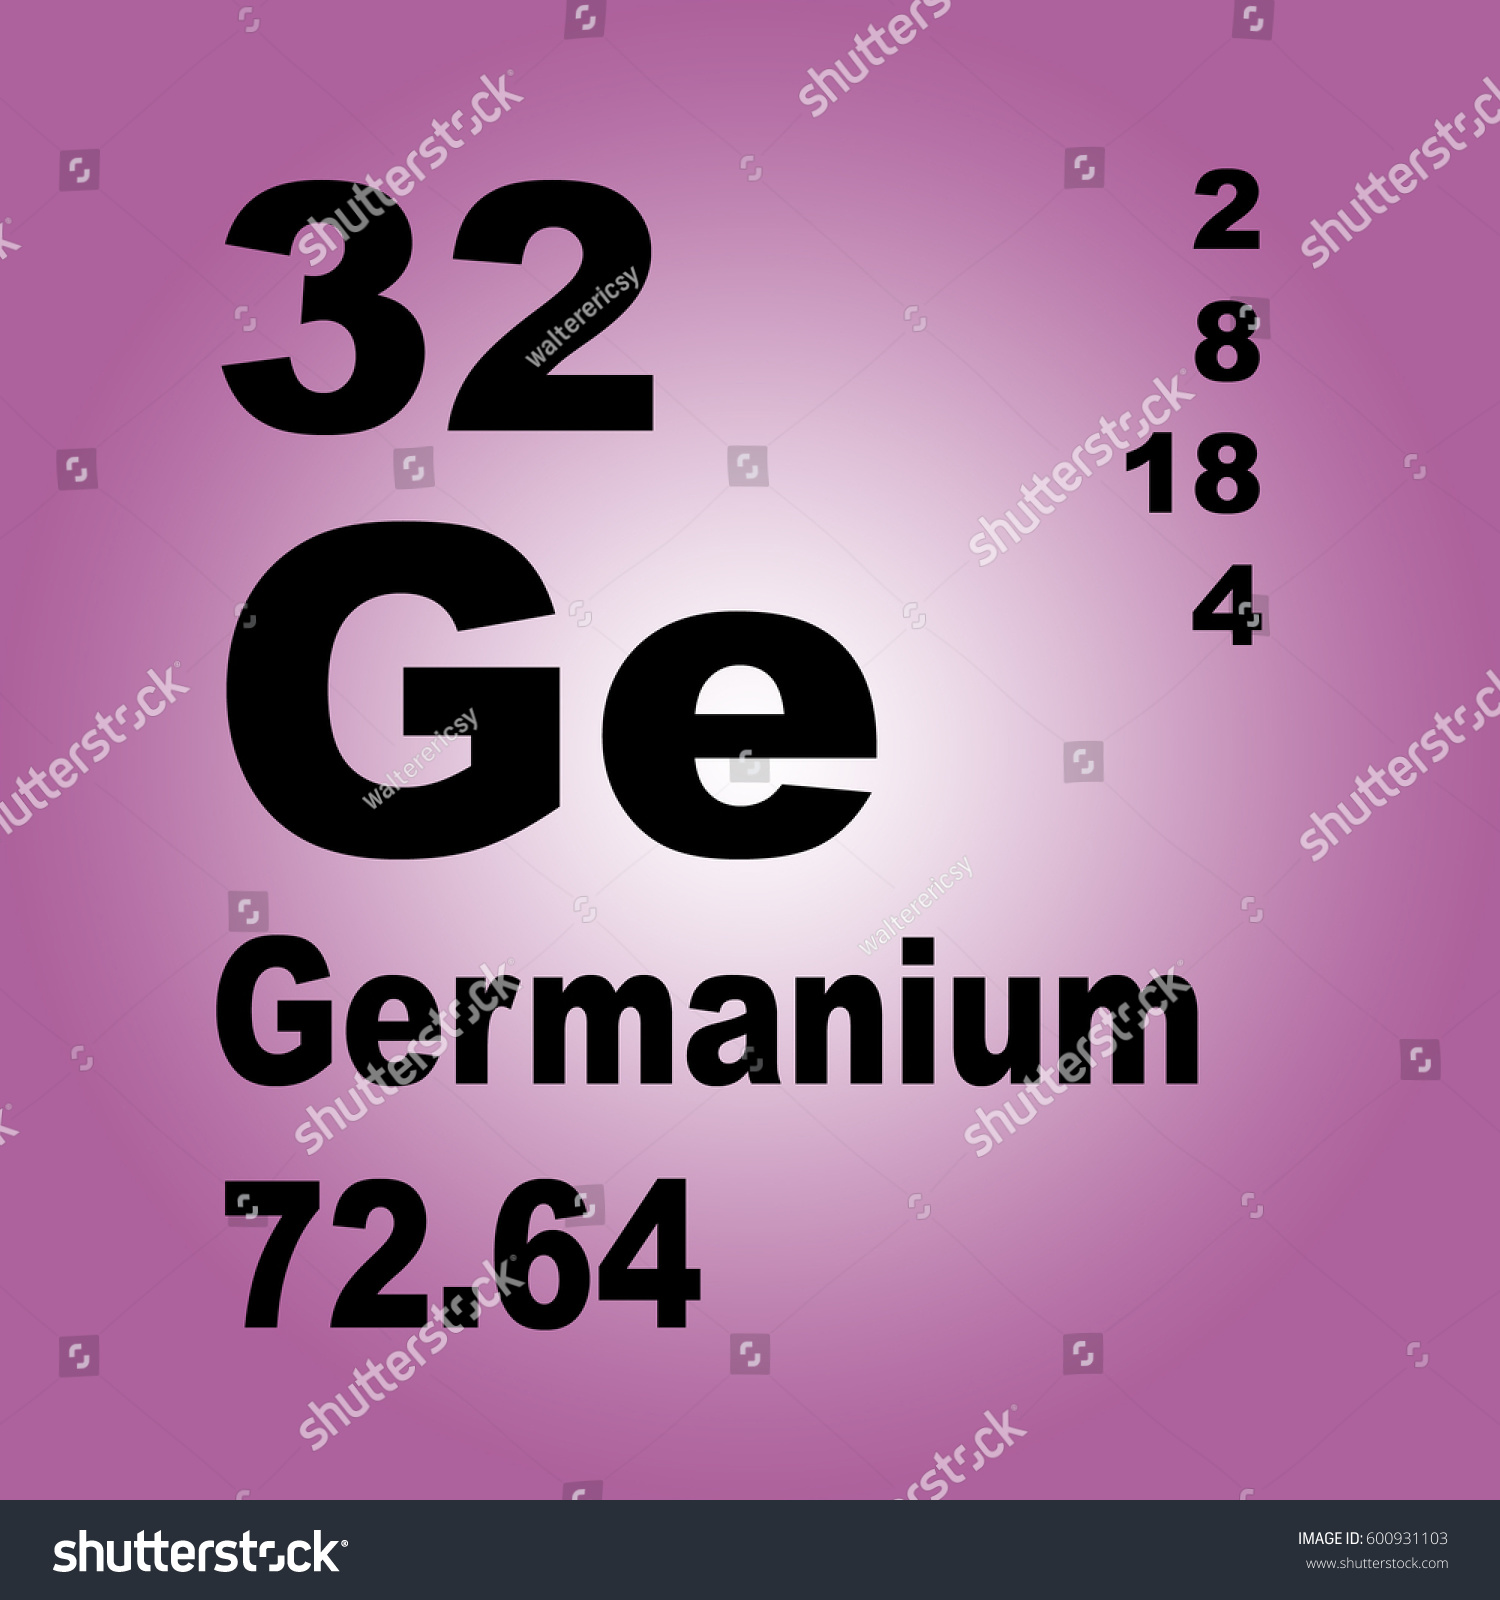 Germanium periodic table choice image periodic table images germanium periodic table elements stock illustration 600931103 germanium periodic table of elements gamestrikefo choice image gamestrikefo Image collections